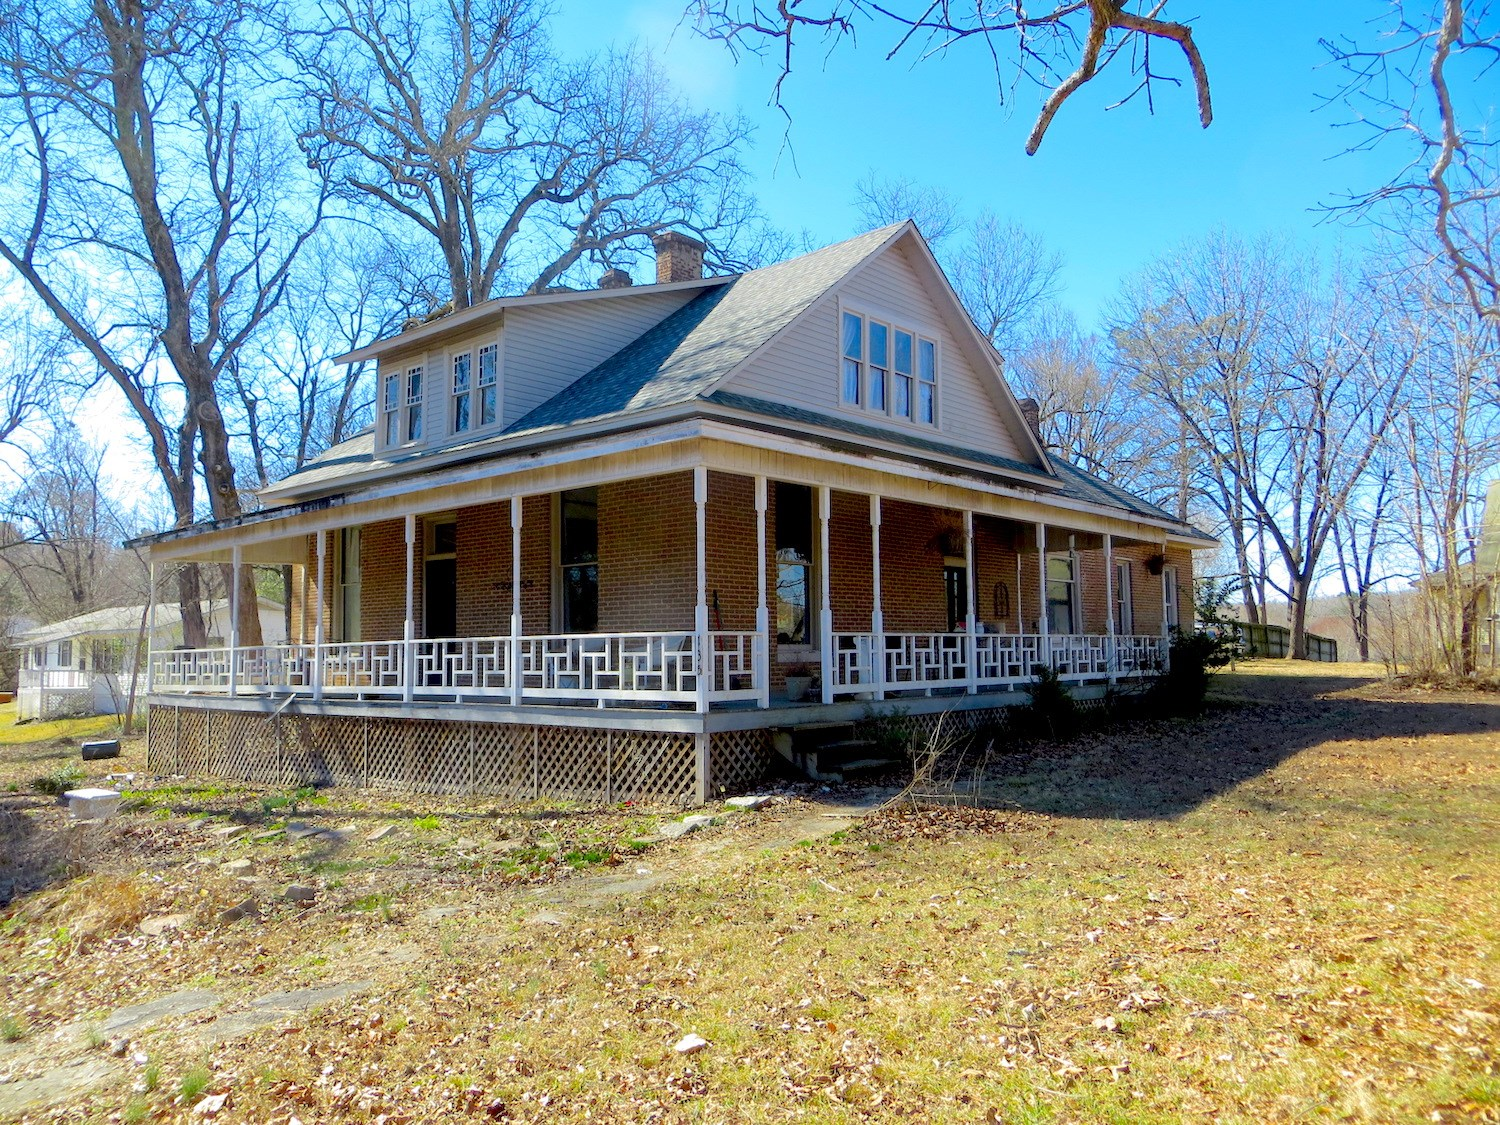 Early American Home For Sale near Spring River